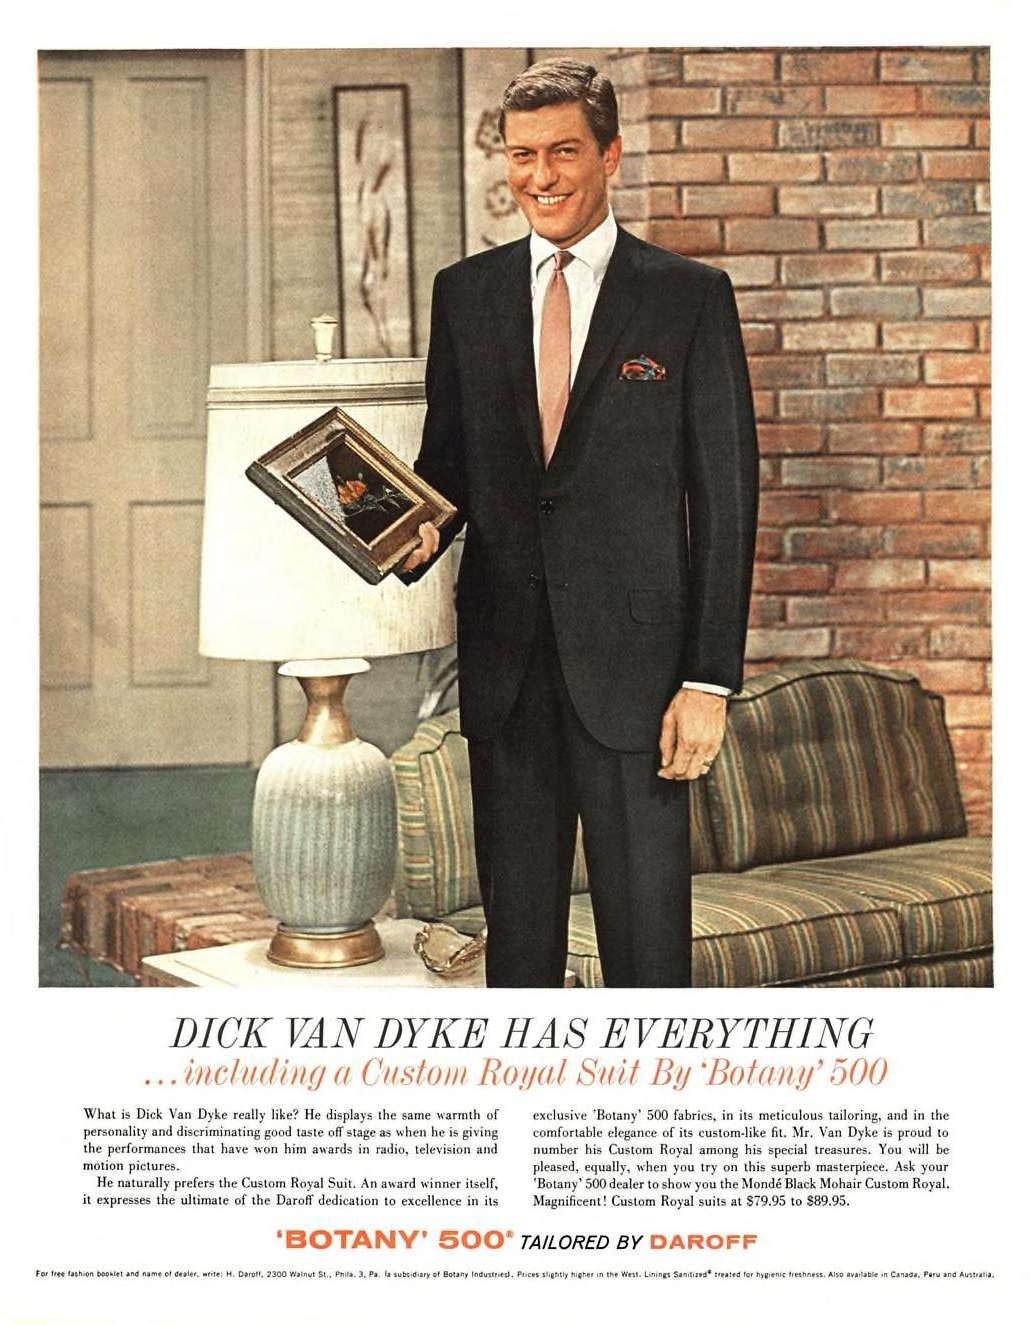 Botany 500 featuring Dick Van Dyke - published in Esquire - March 1966